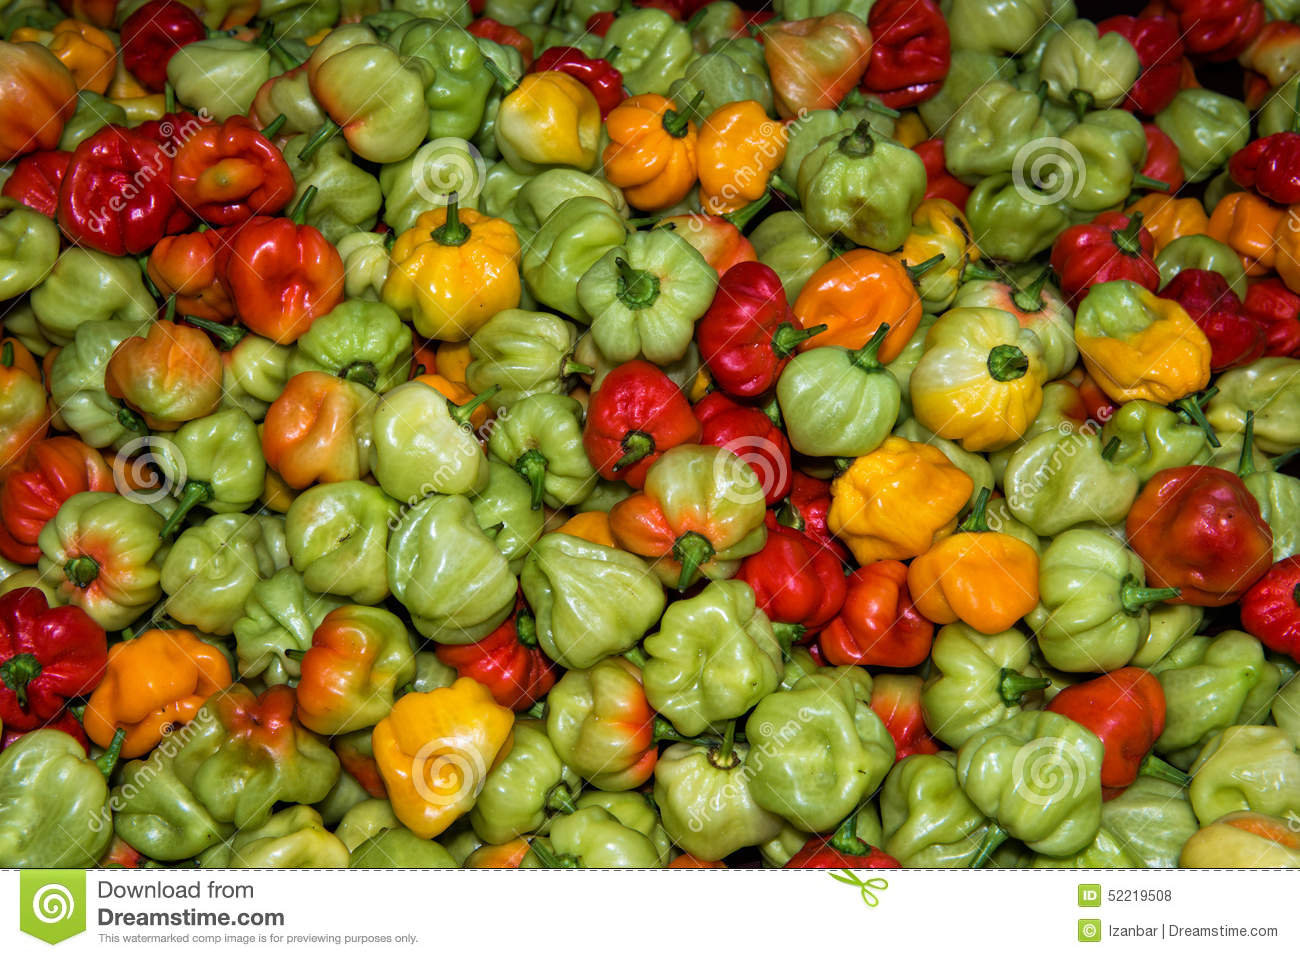 Pictures of asian peppers agree